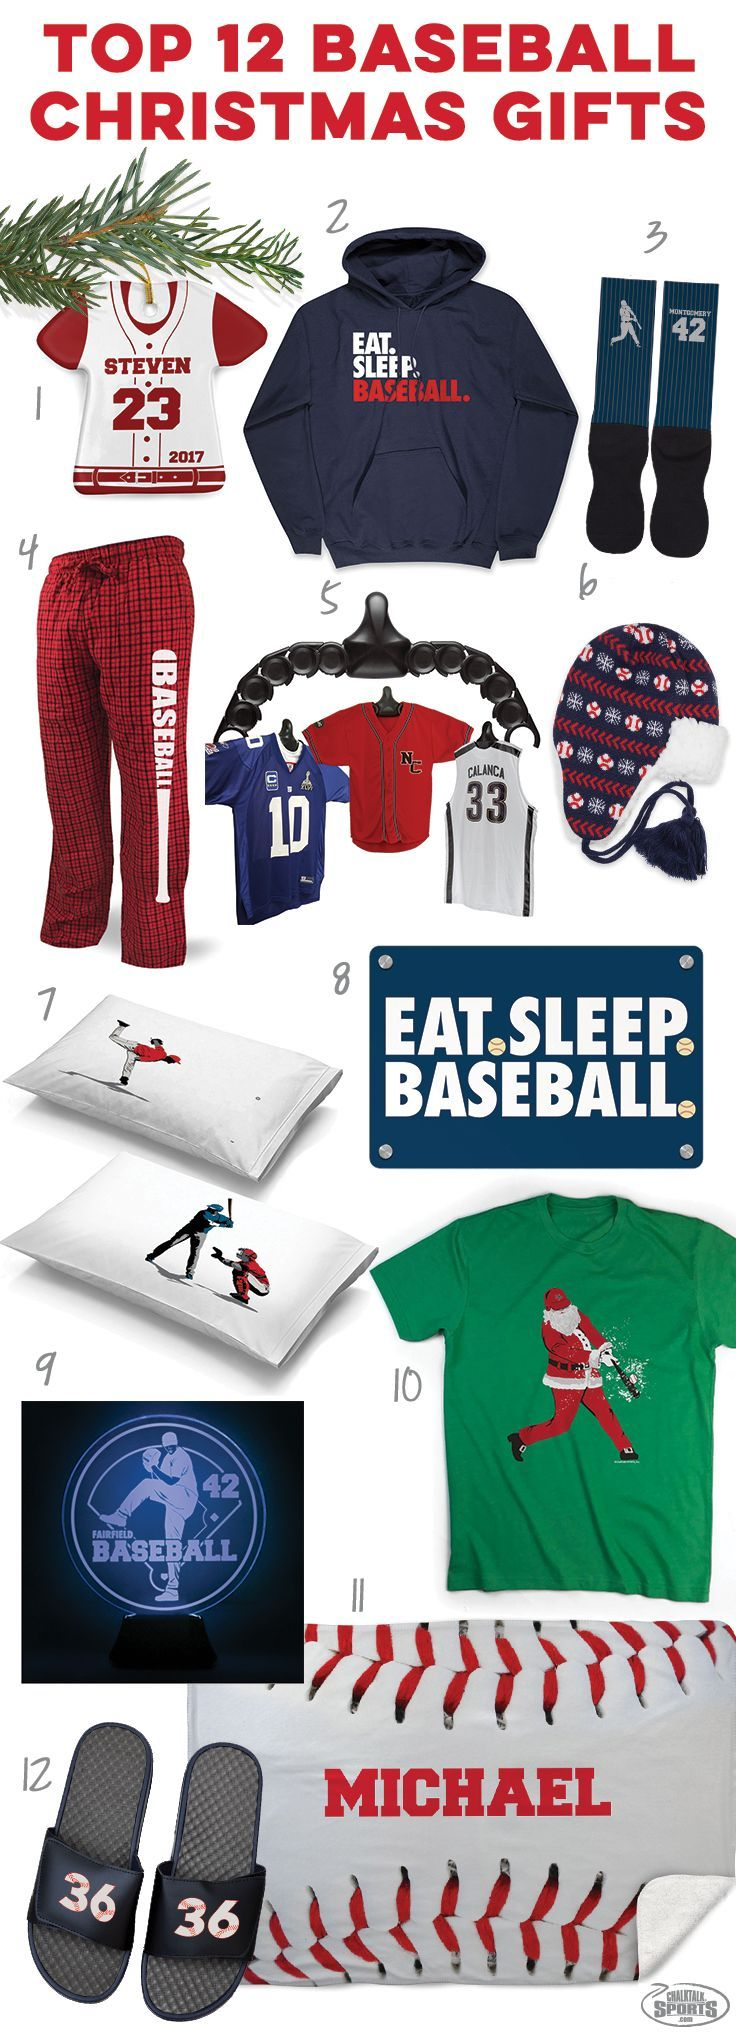 Check out these great holiday baseball gift ideas! Click